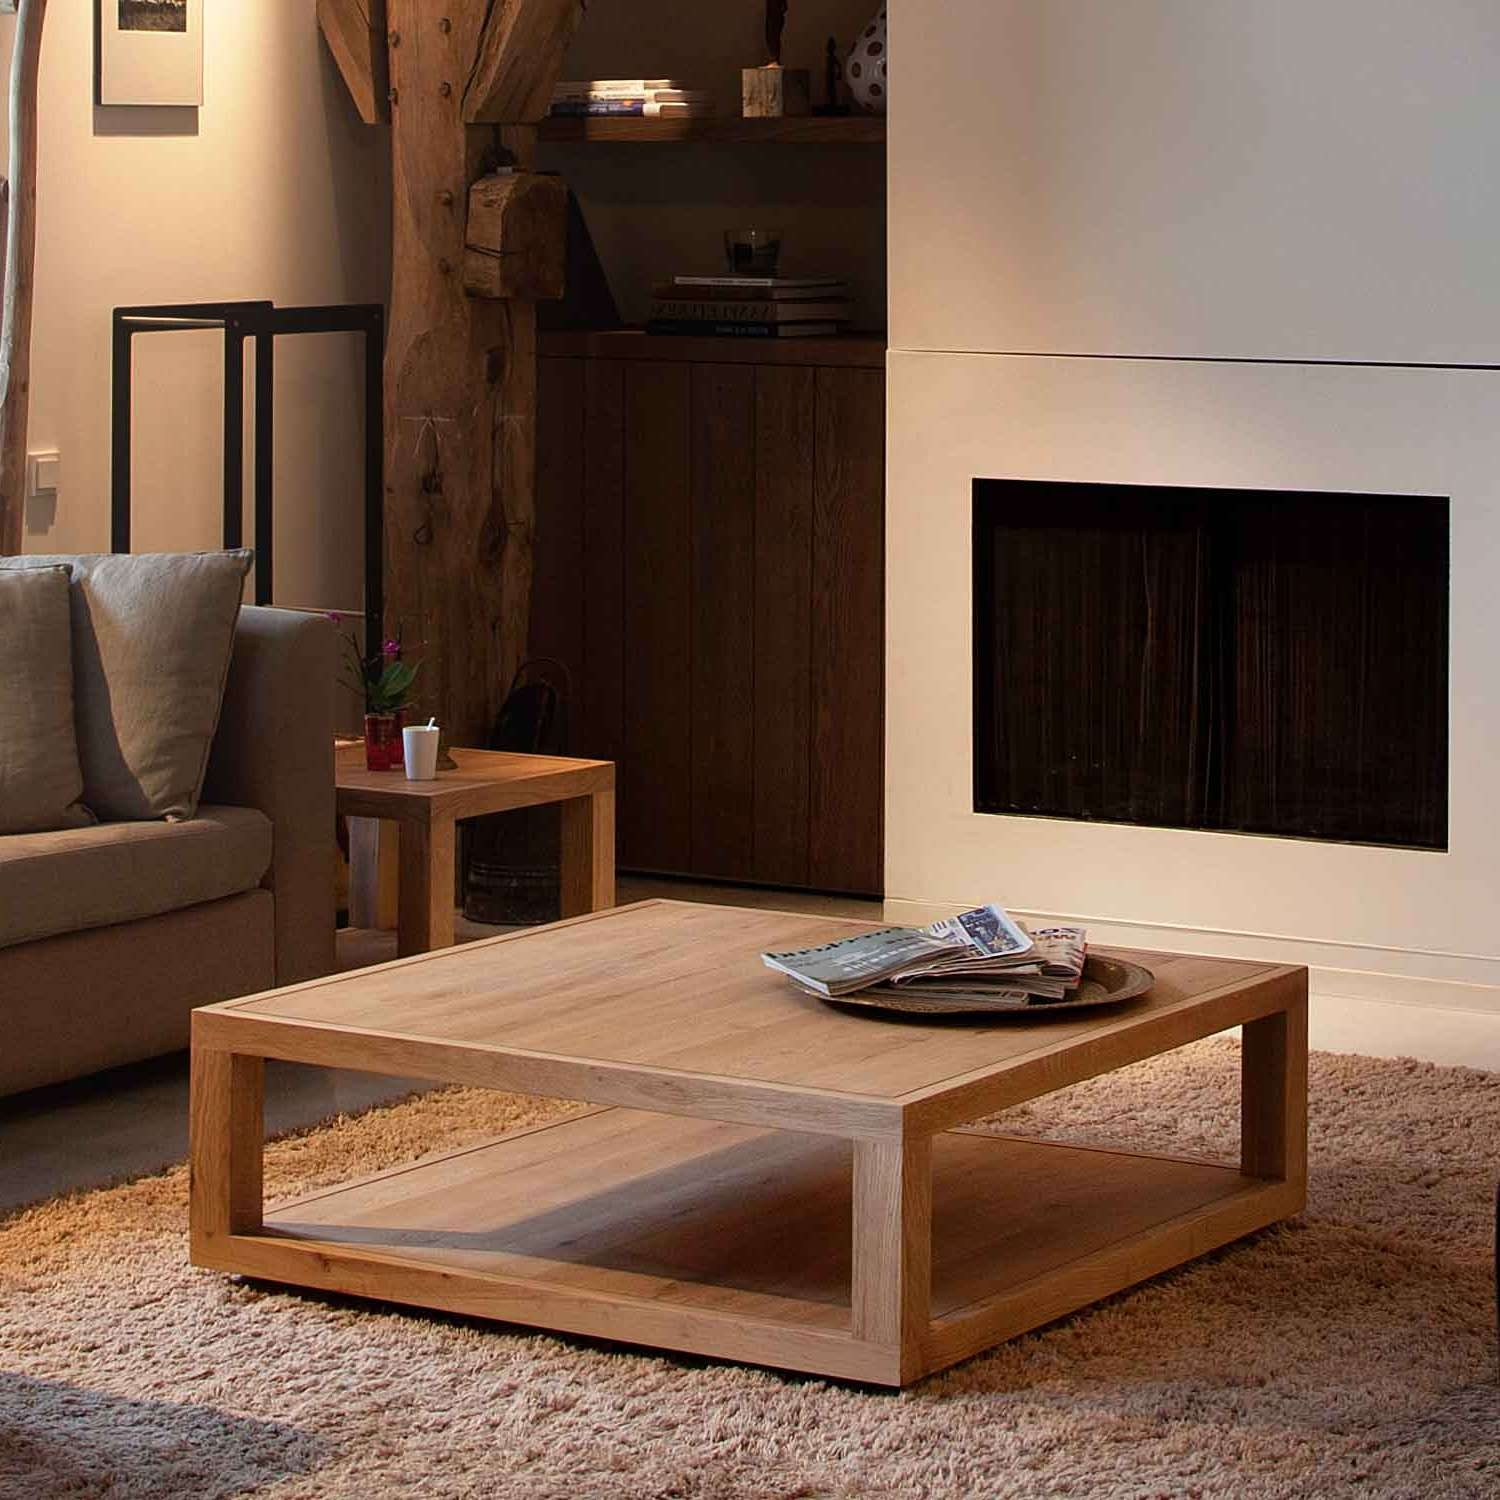 Custom Diy Low Square Wood Oak Coffee Table With Tray And Pertaining To Recent Square Wood Coffee Tables With Storage (View 17 of 20)